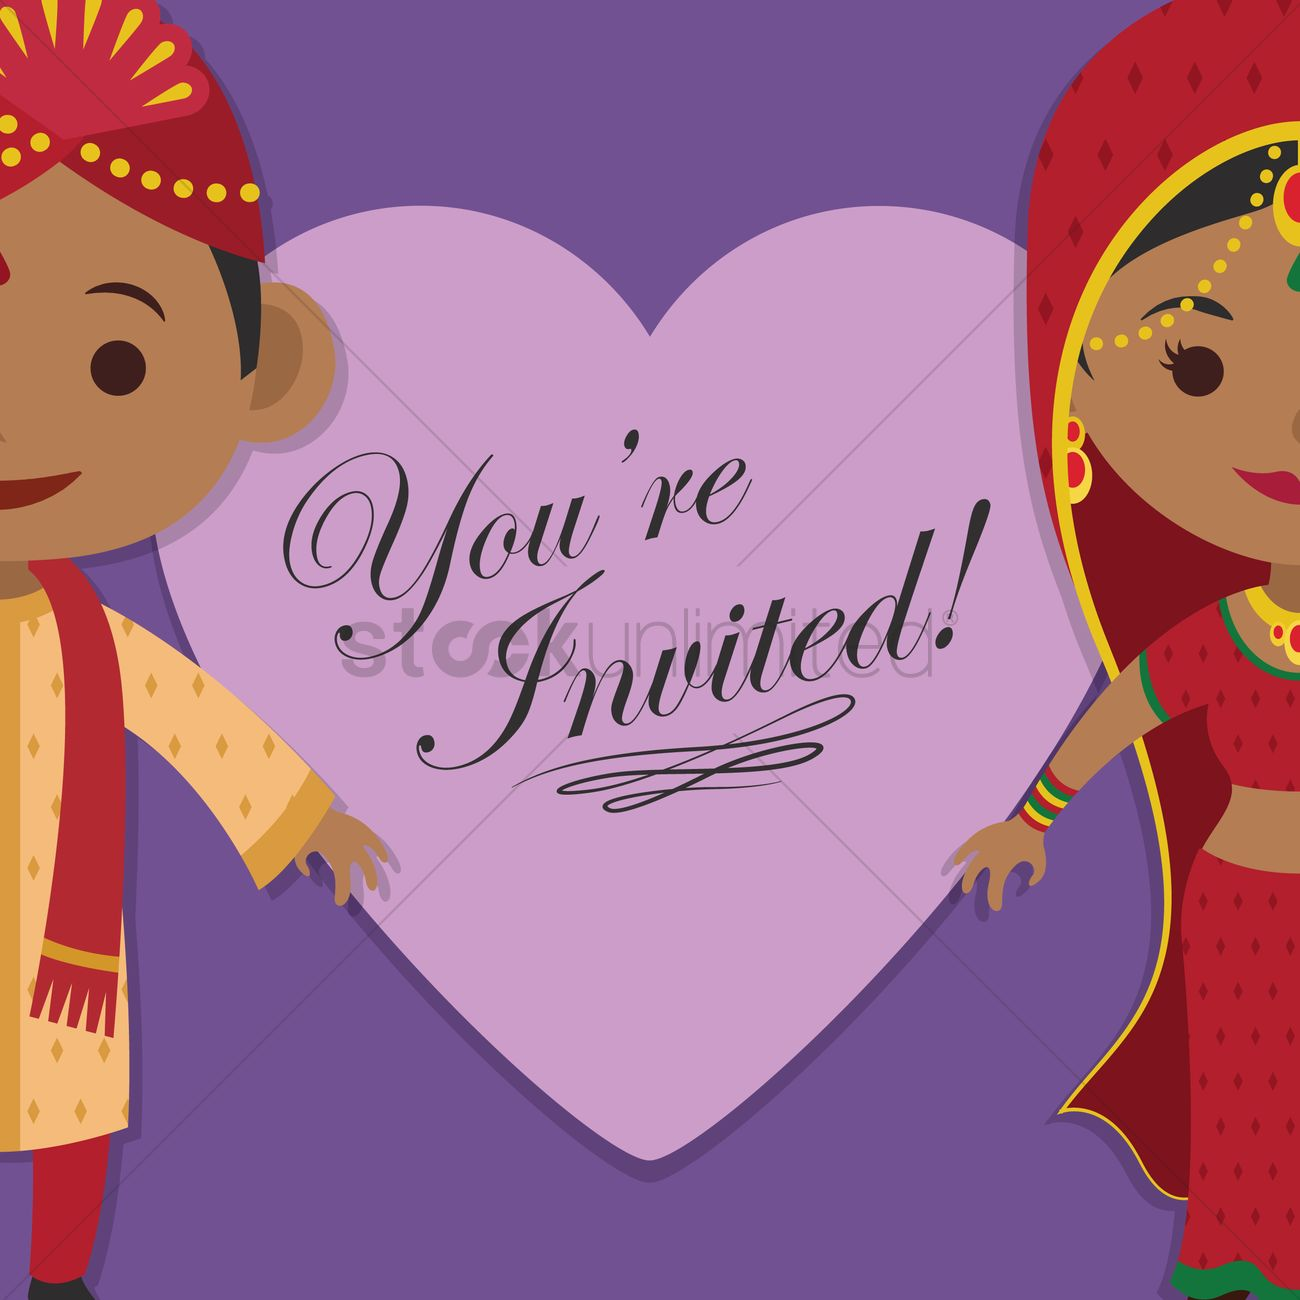 Indian wedding invitation vector image 1244217 stockunlimited indian wedding invitation vector graphic stopboris